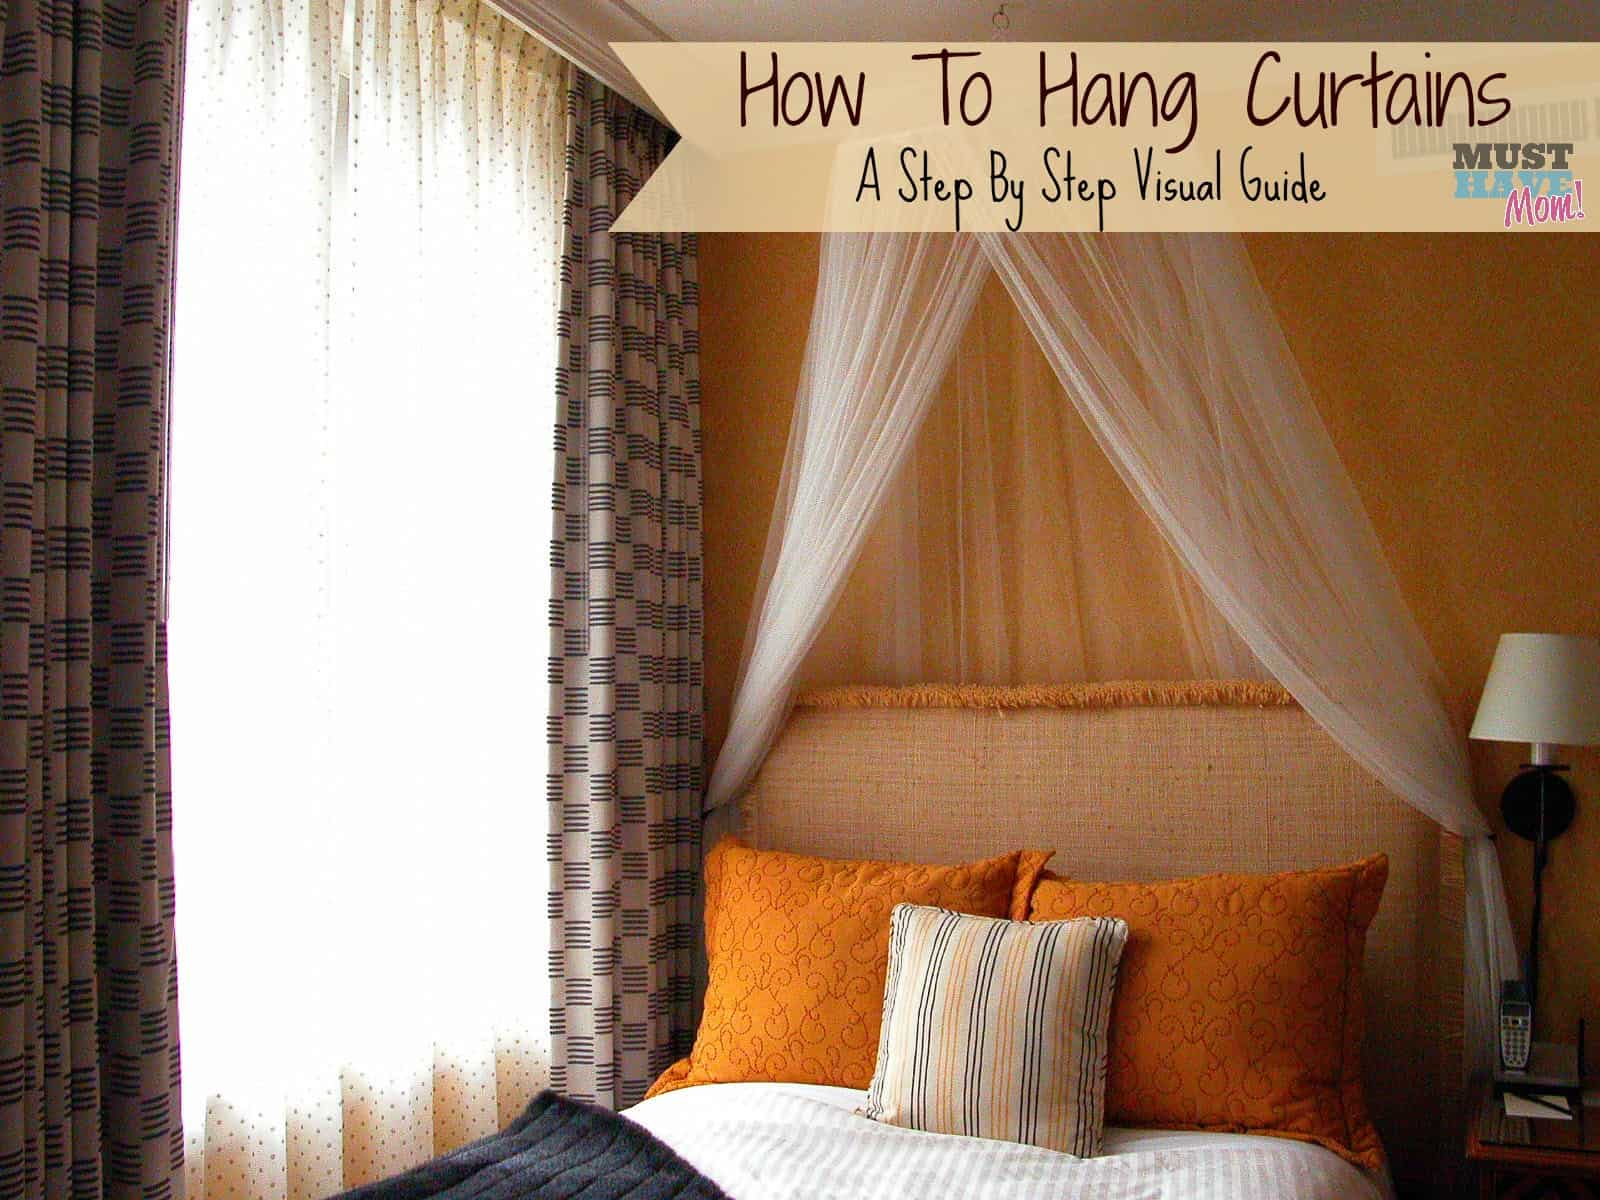 how to hang curtains a step by step visual guide must have mom